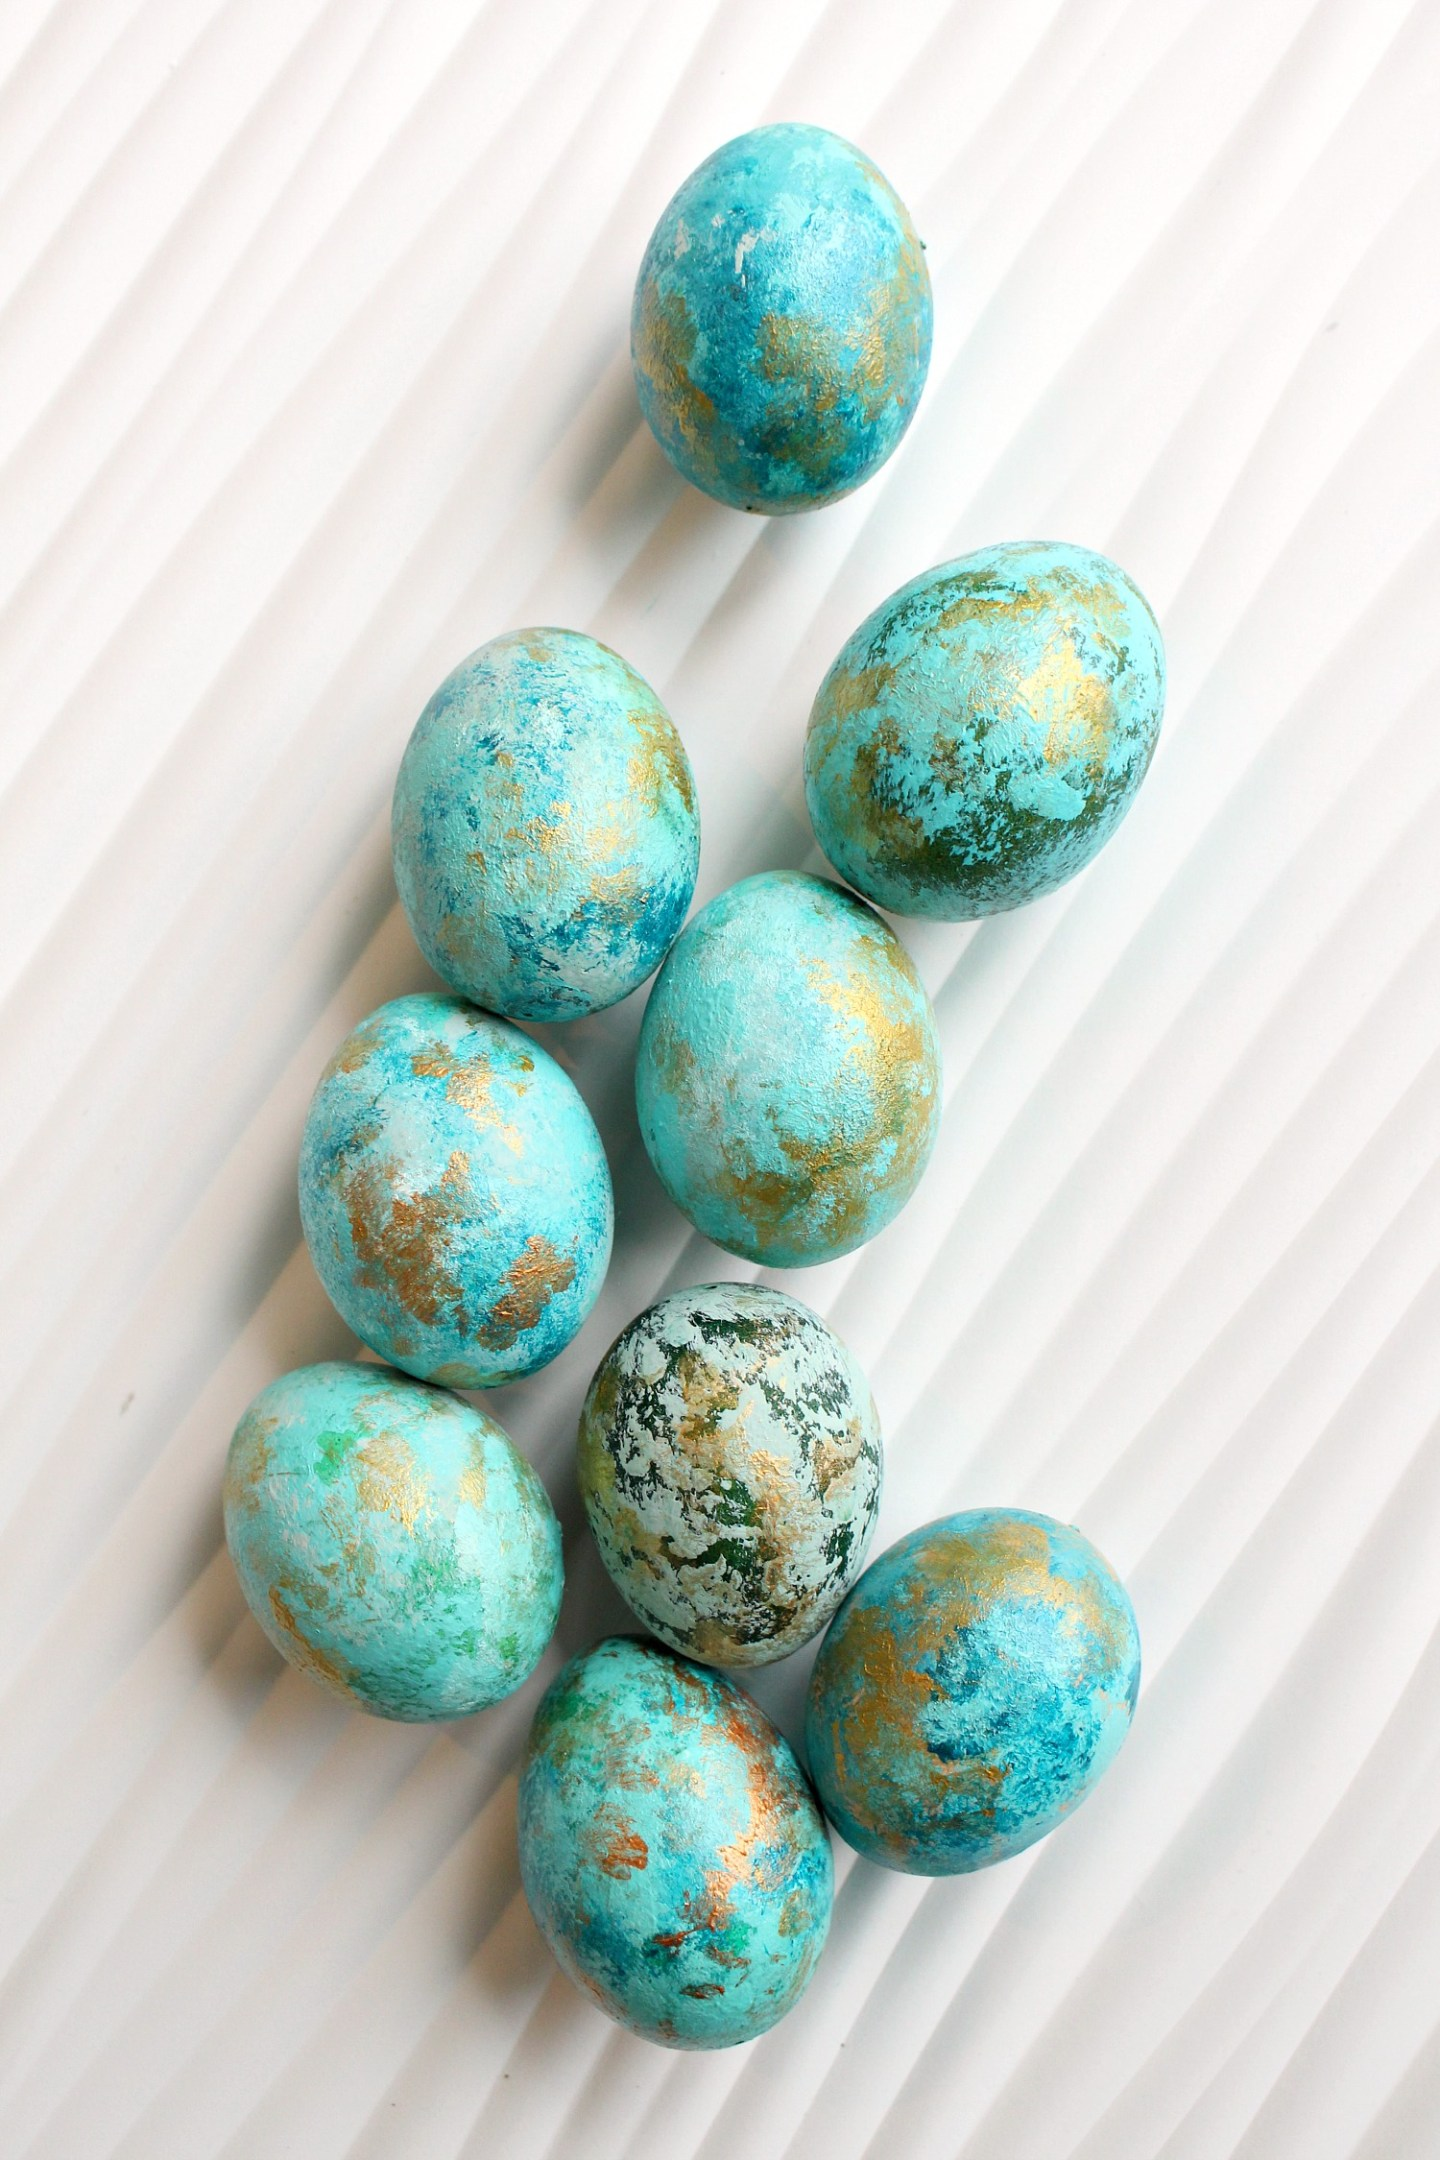 Painted Easter Eggs Look Like Gemstones